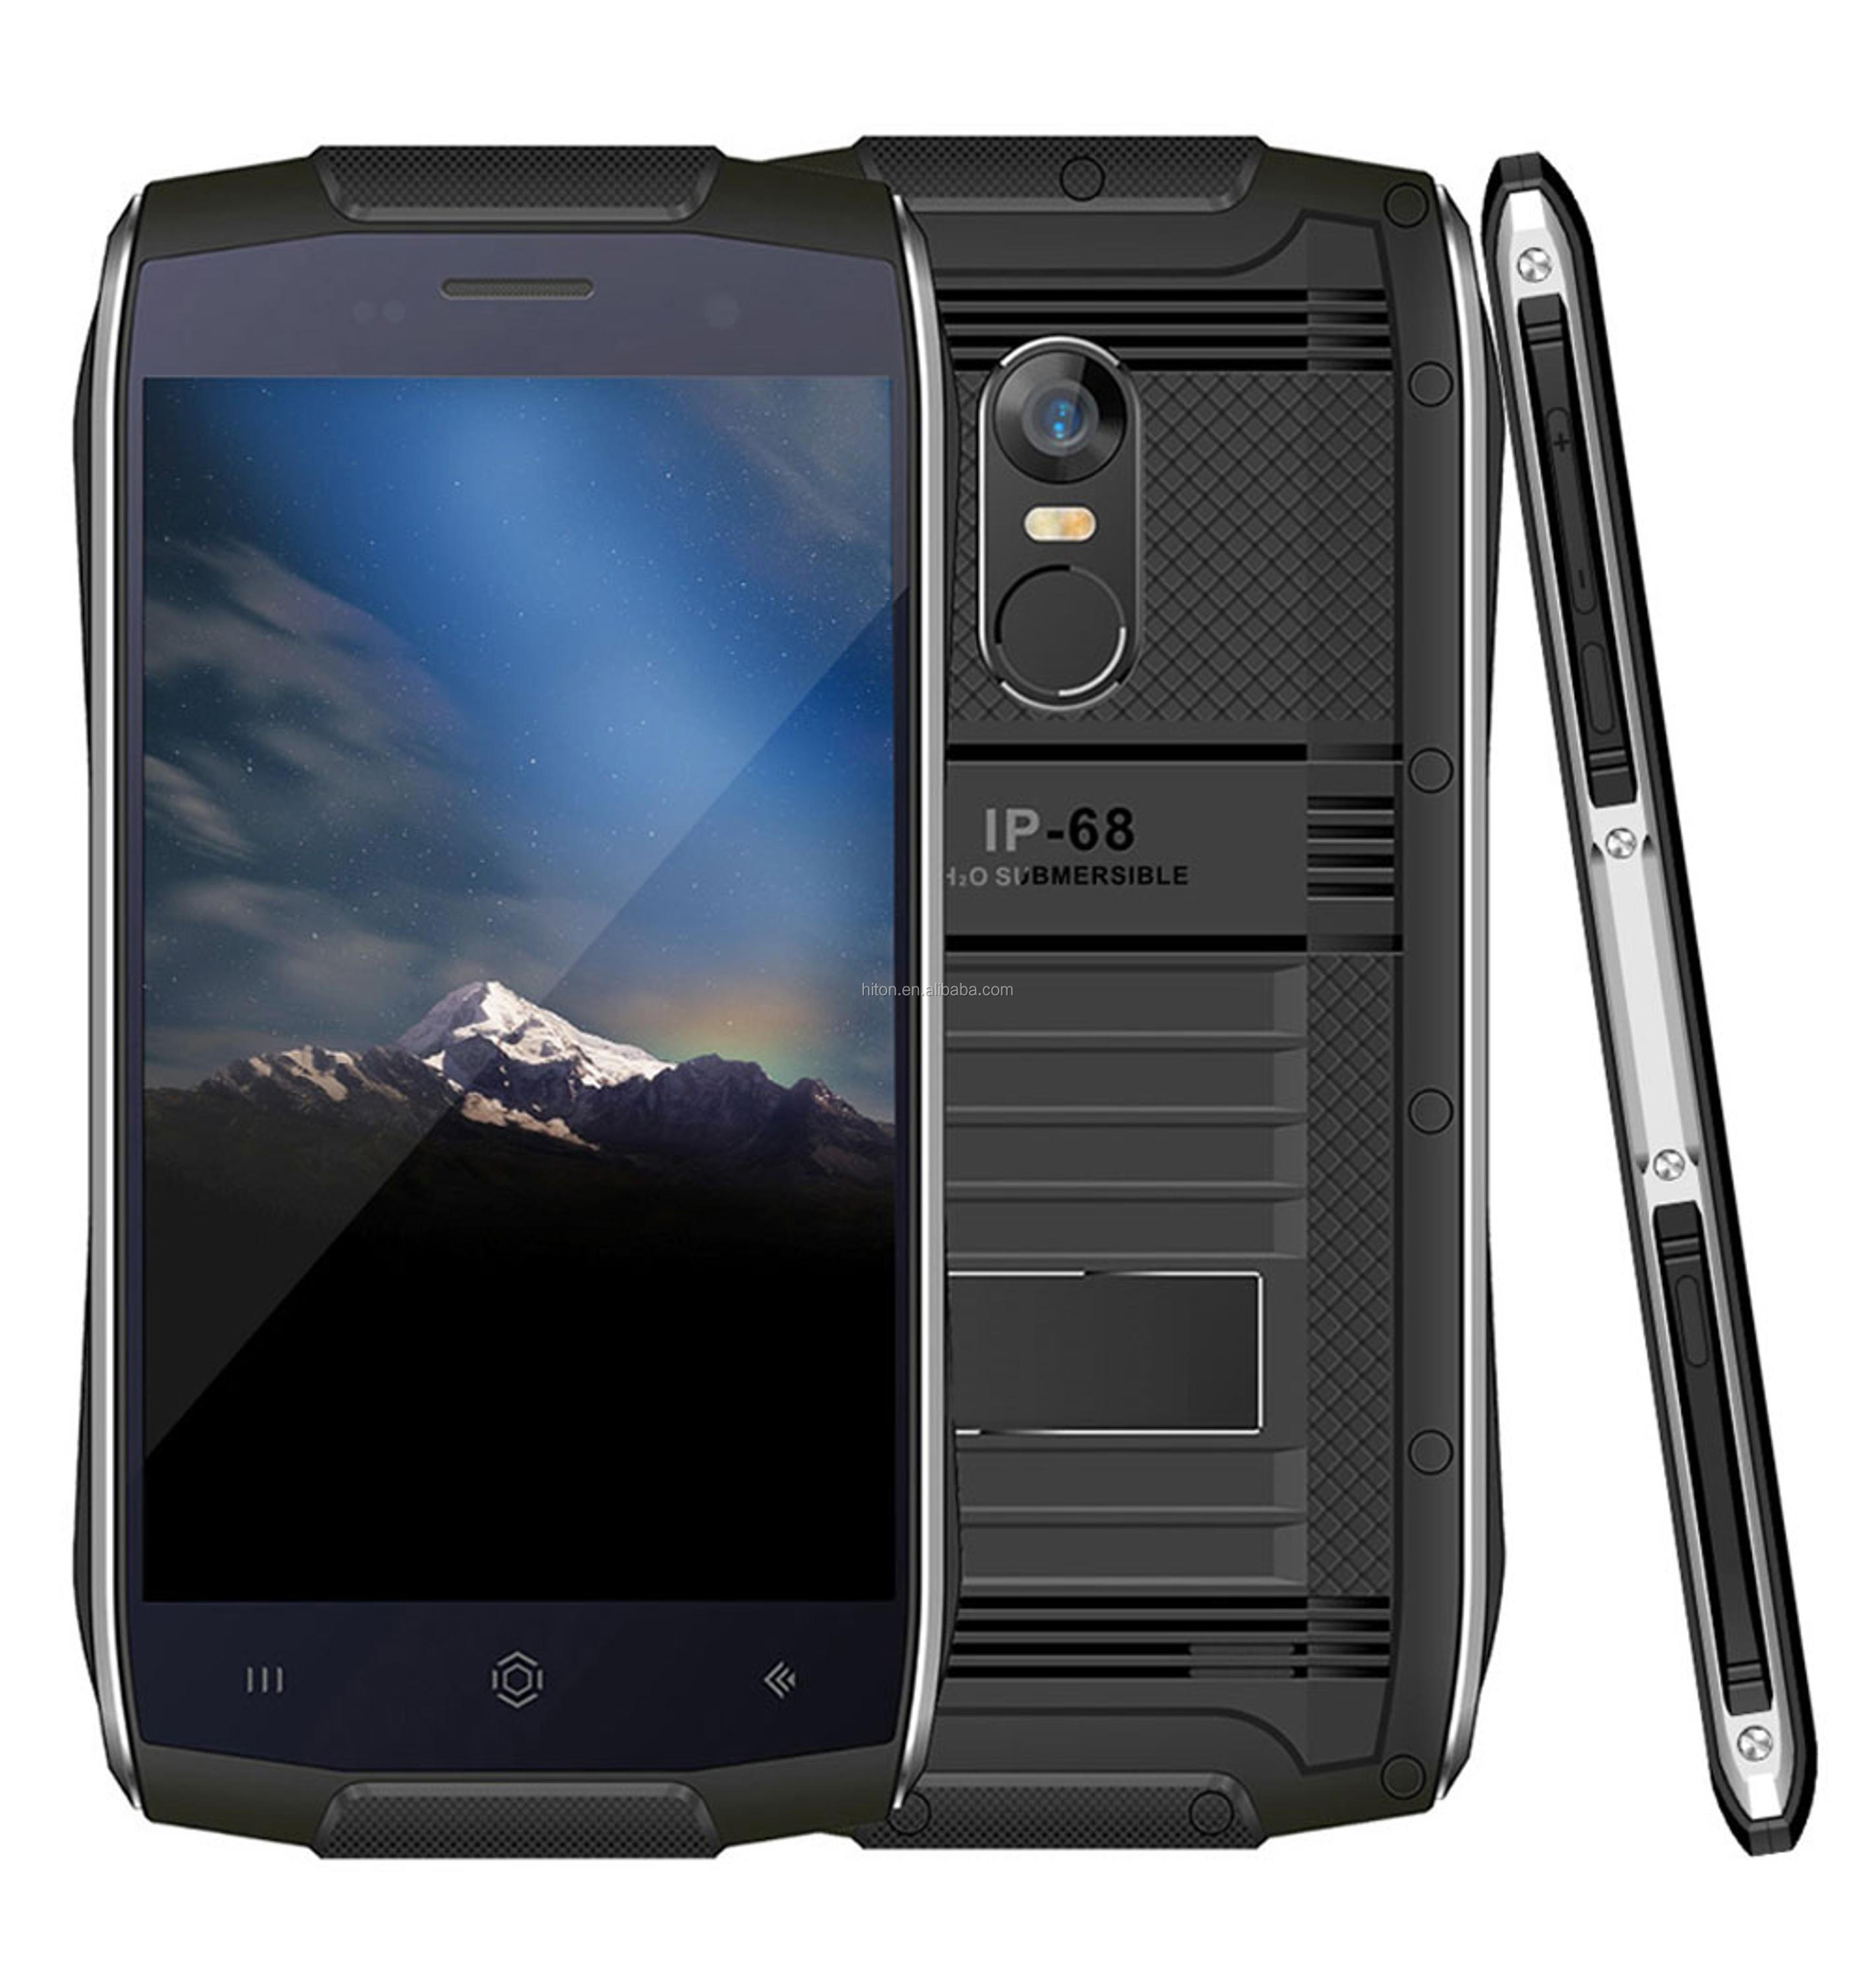 android hd shockproof rugged item geekbuying nfc phones scratch waterproof proof rug fast blackview charge phone yellow core octa